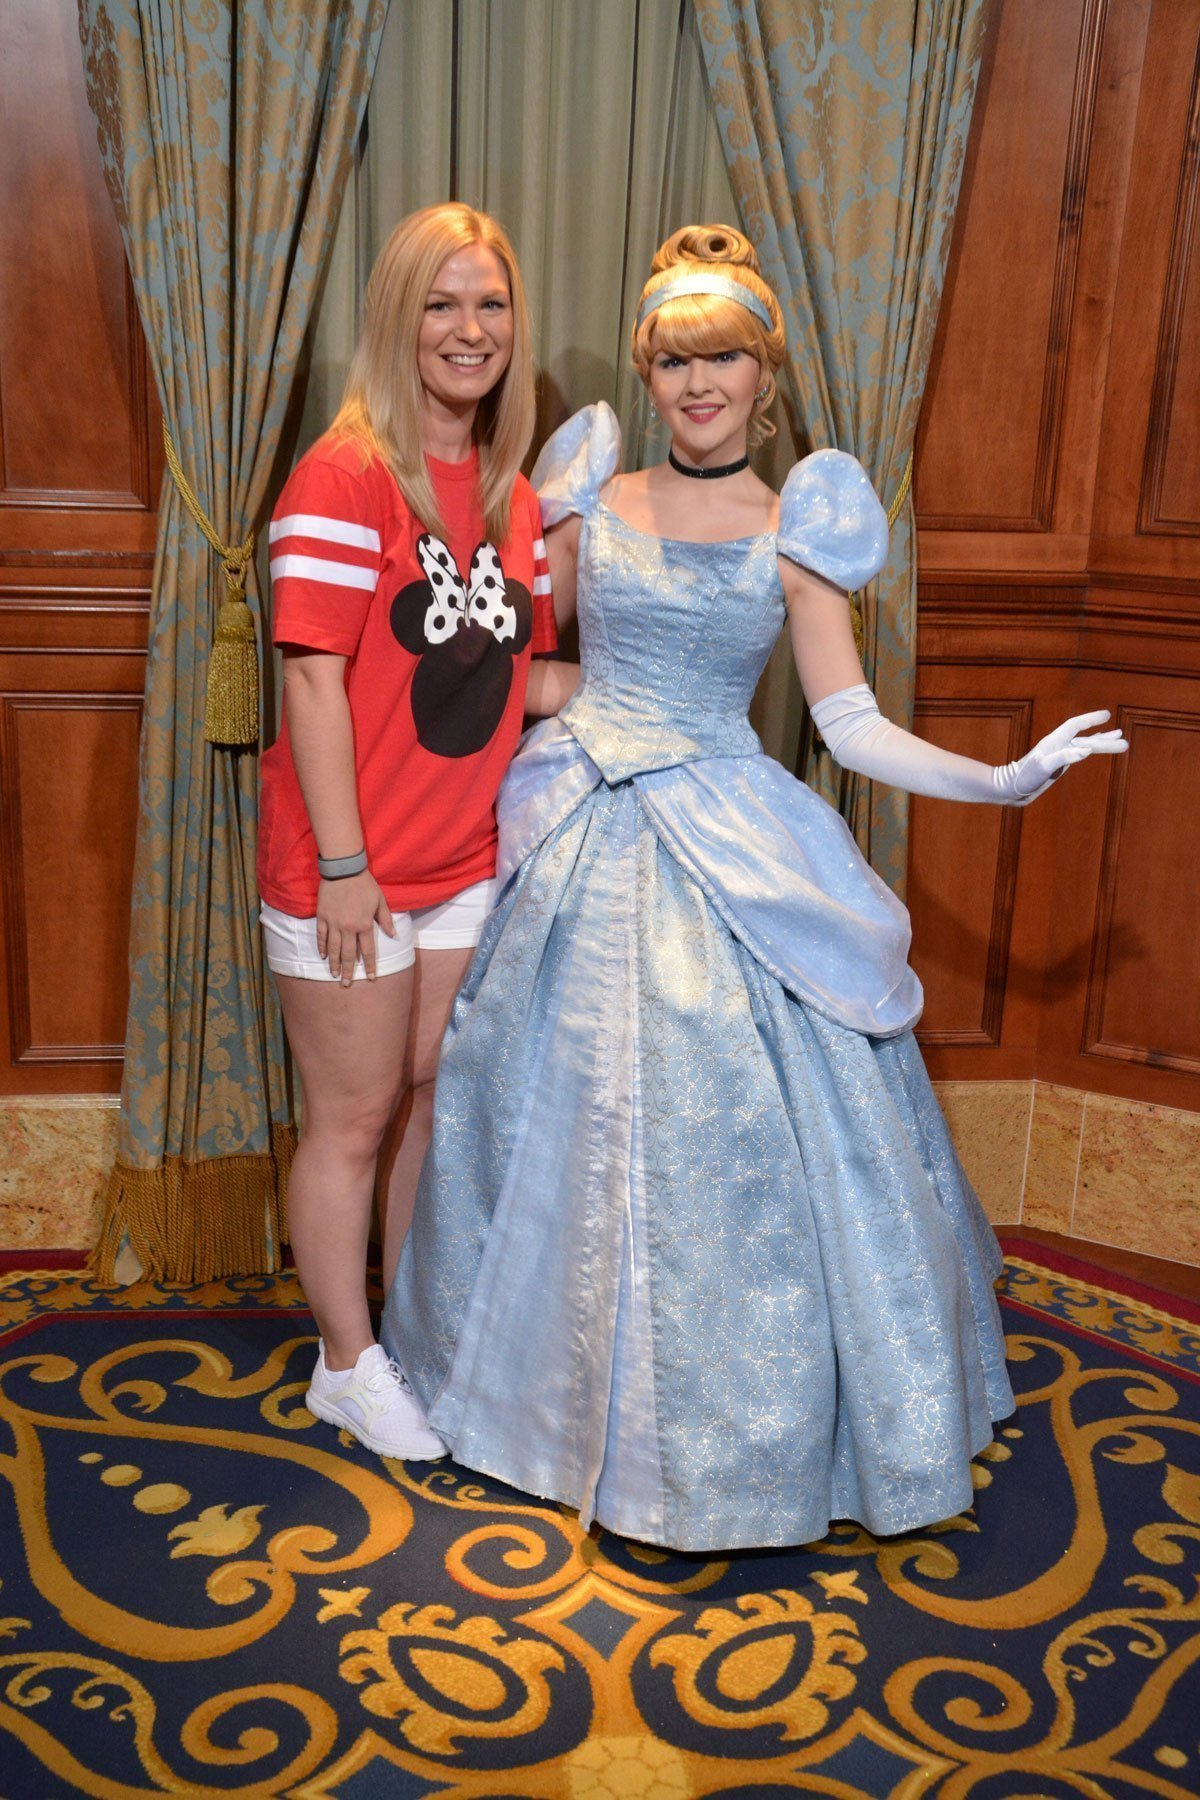 Cinderella meet 'n' greet at Magic Kingdom